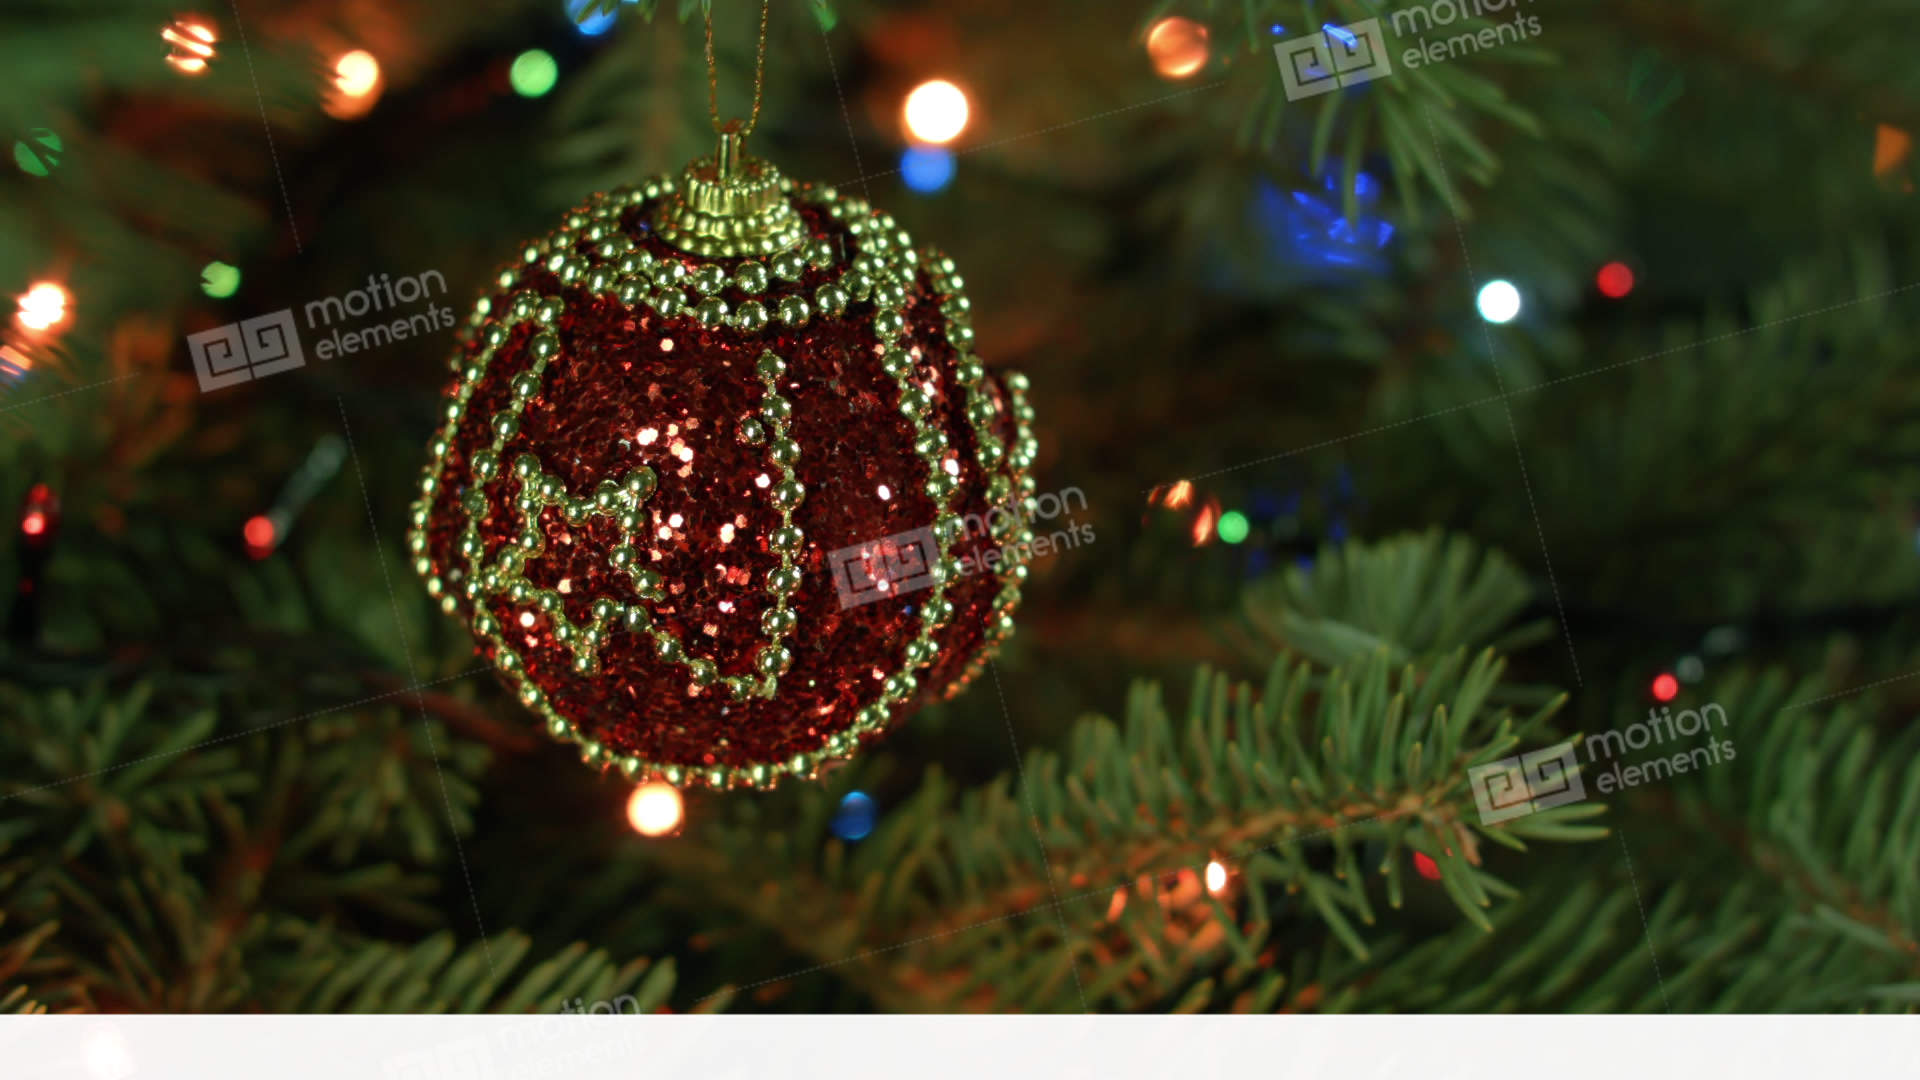 magically decorated christmas tree with balls ribbons stock video footage - How To Decorate A Christmas Tree With Ribbon Video